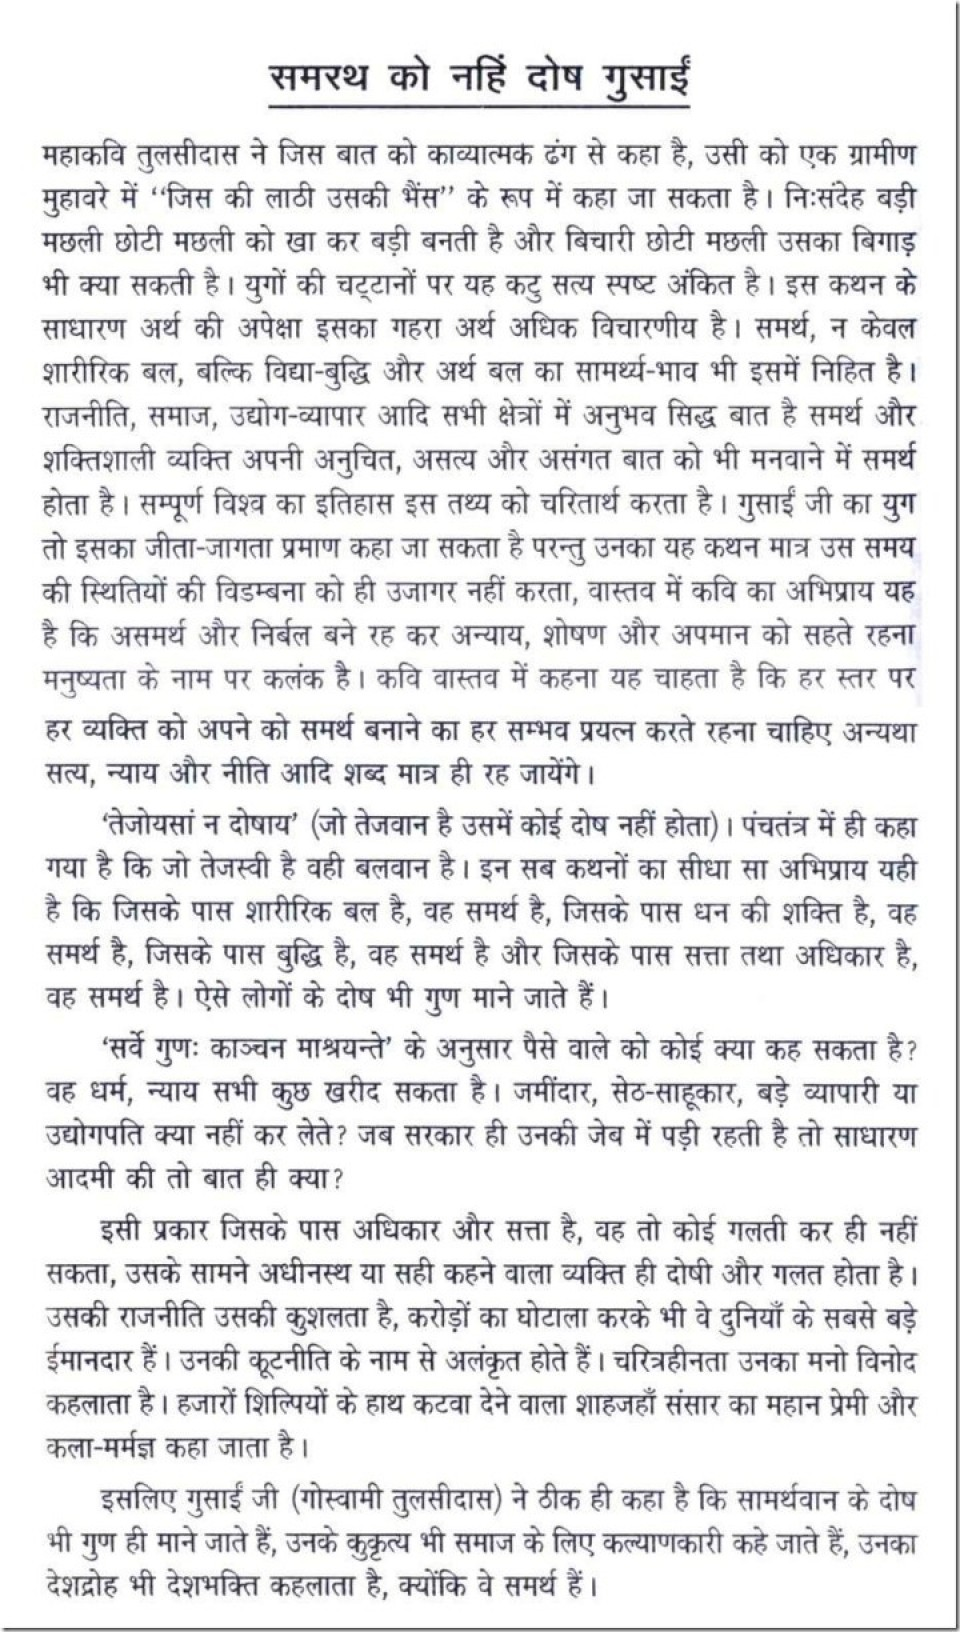 007 Good Habits Essay In Hindi Example Hh0055 Thumbresize7202c1224 Exceptional And Bad Healthy Eating 960